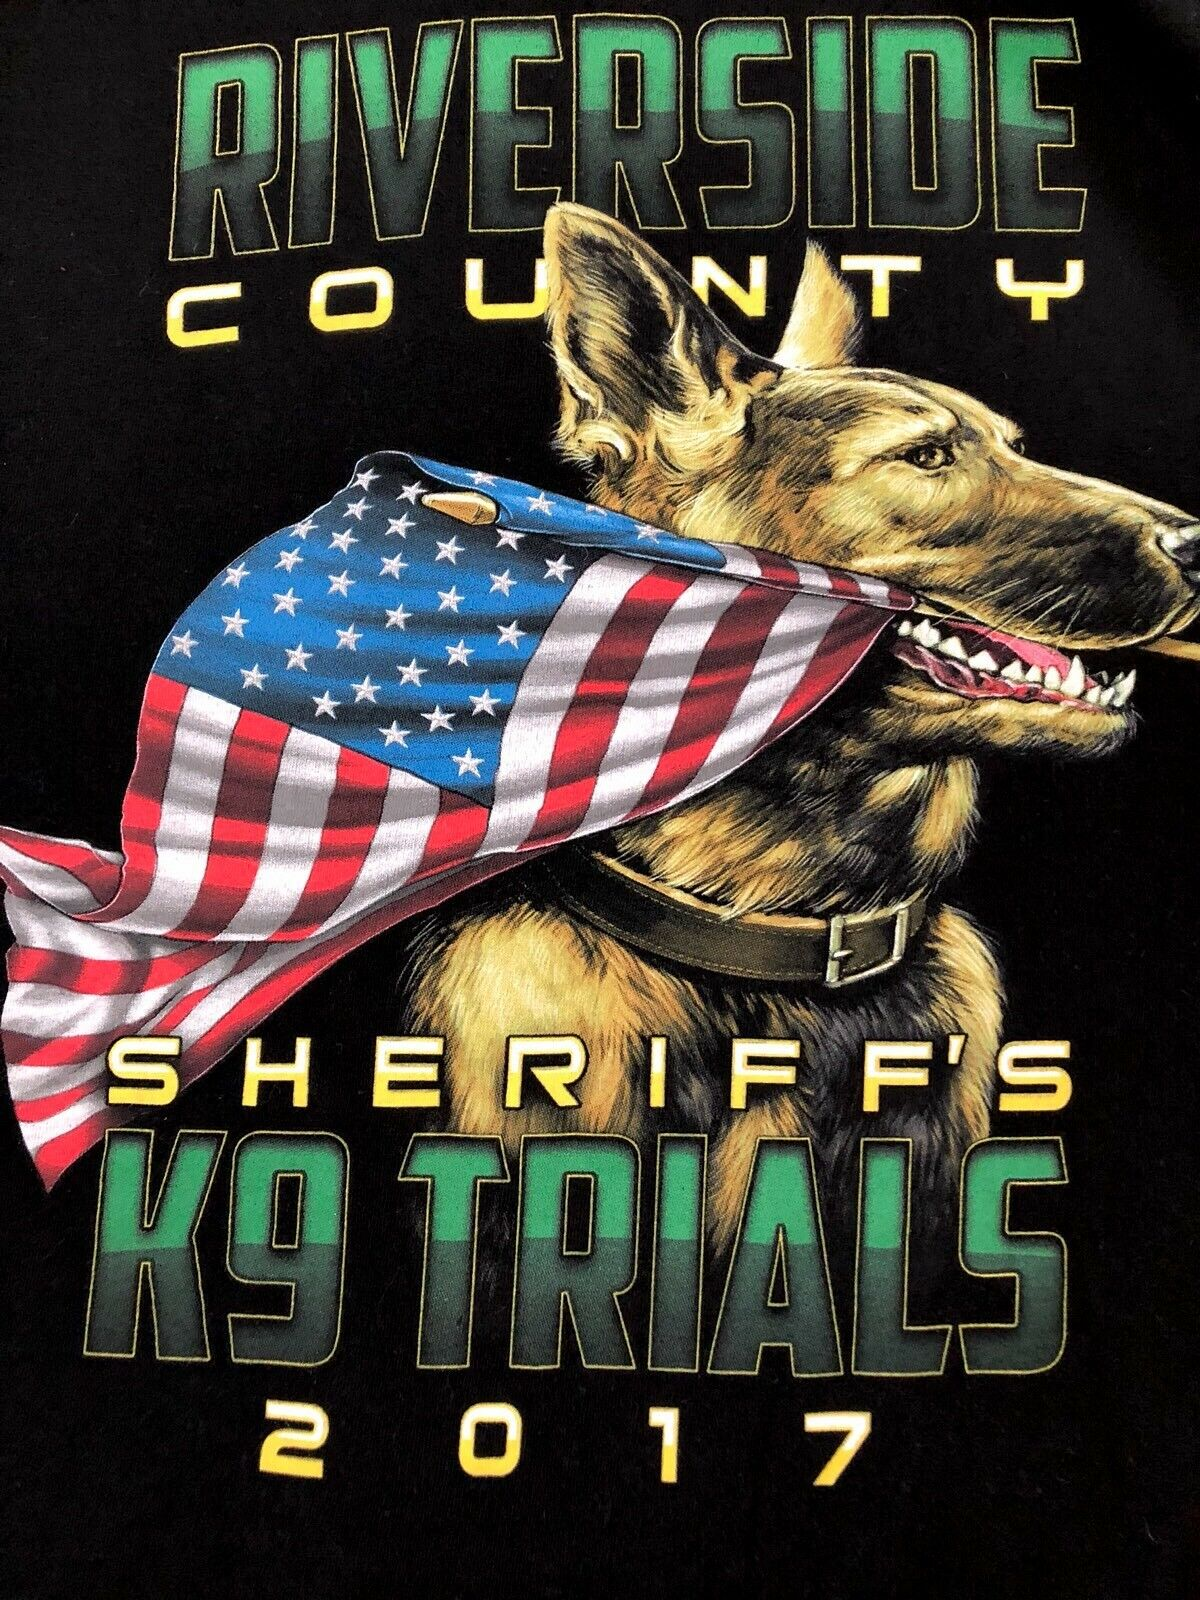 RIVERSIDE COUNTY SHERIFFS Department K 9 TRIALS 2017 Adult Rare T-SHIRT Size M